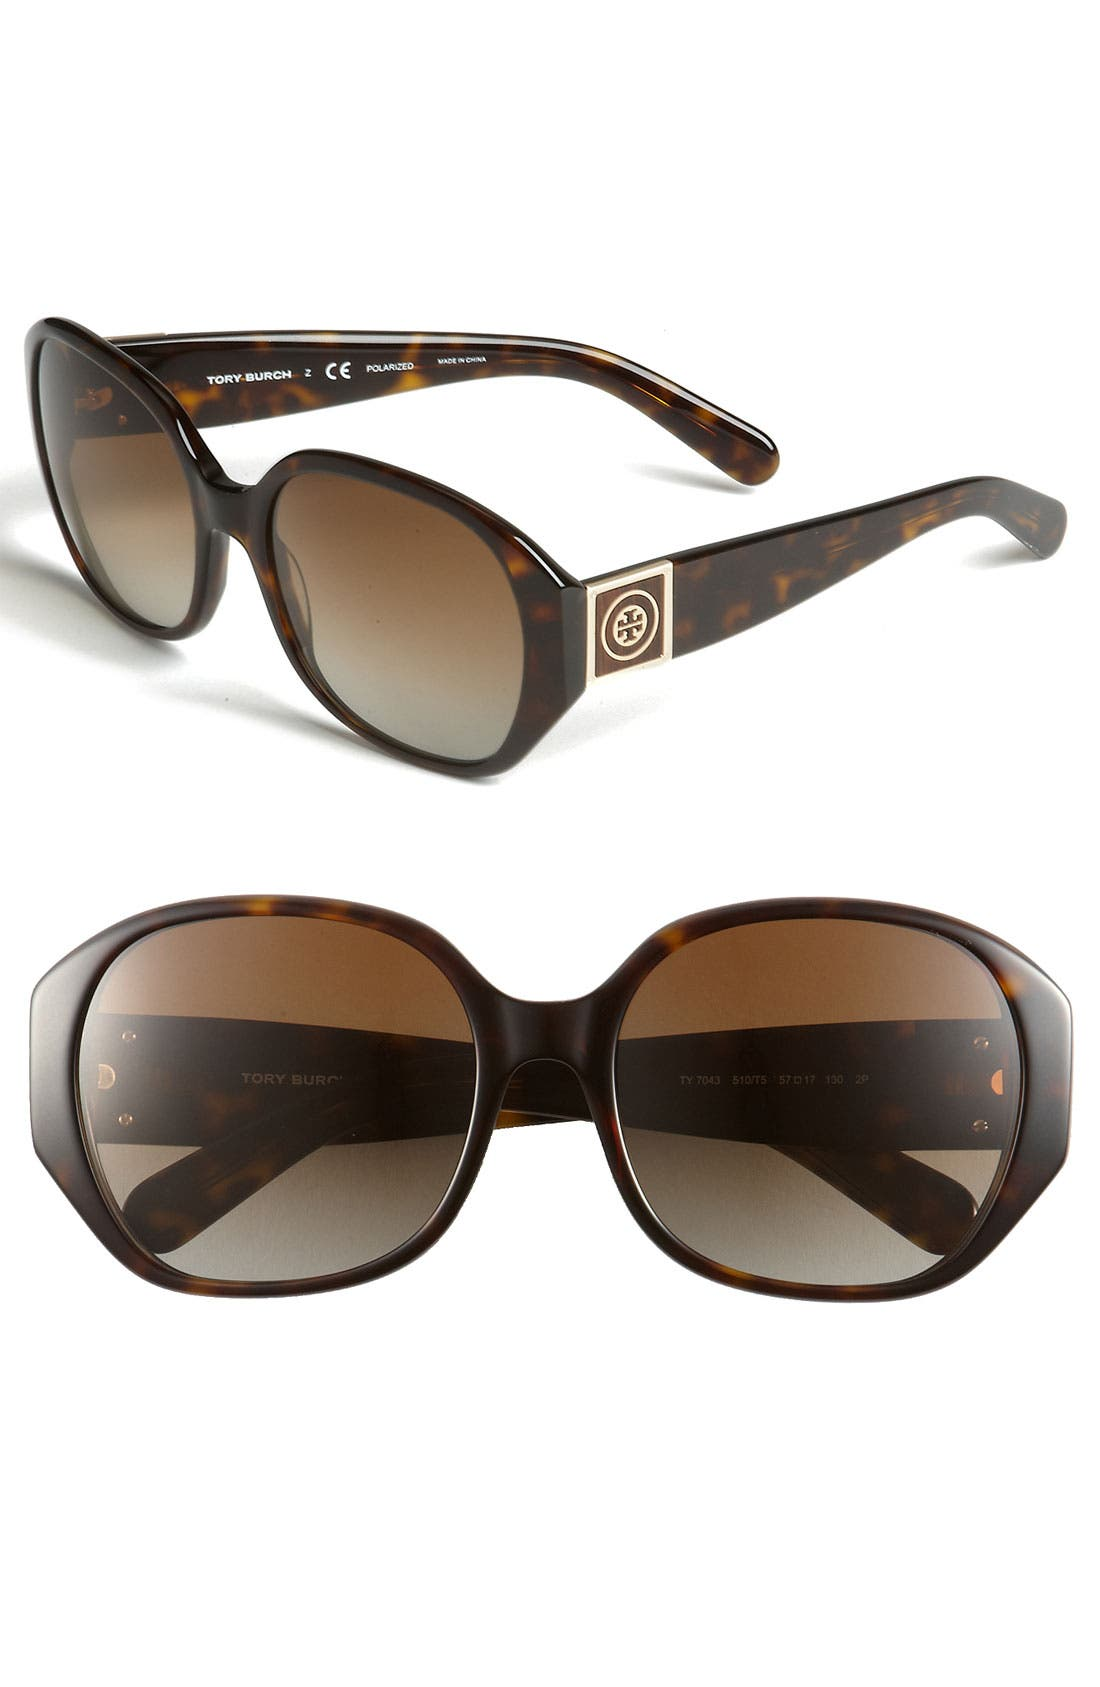 Main Image - Tory Burch 57mm Polarized Sunglasses